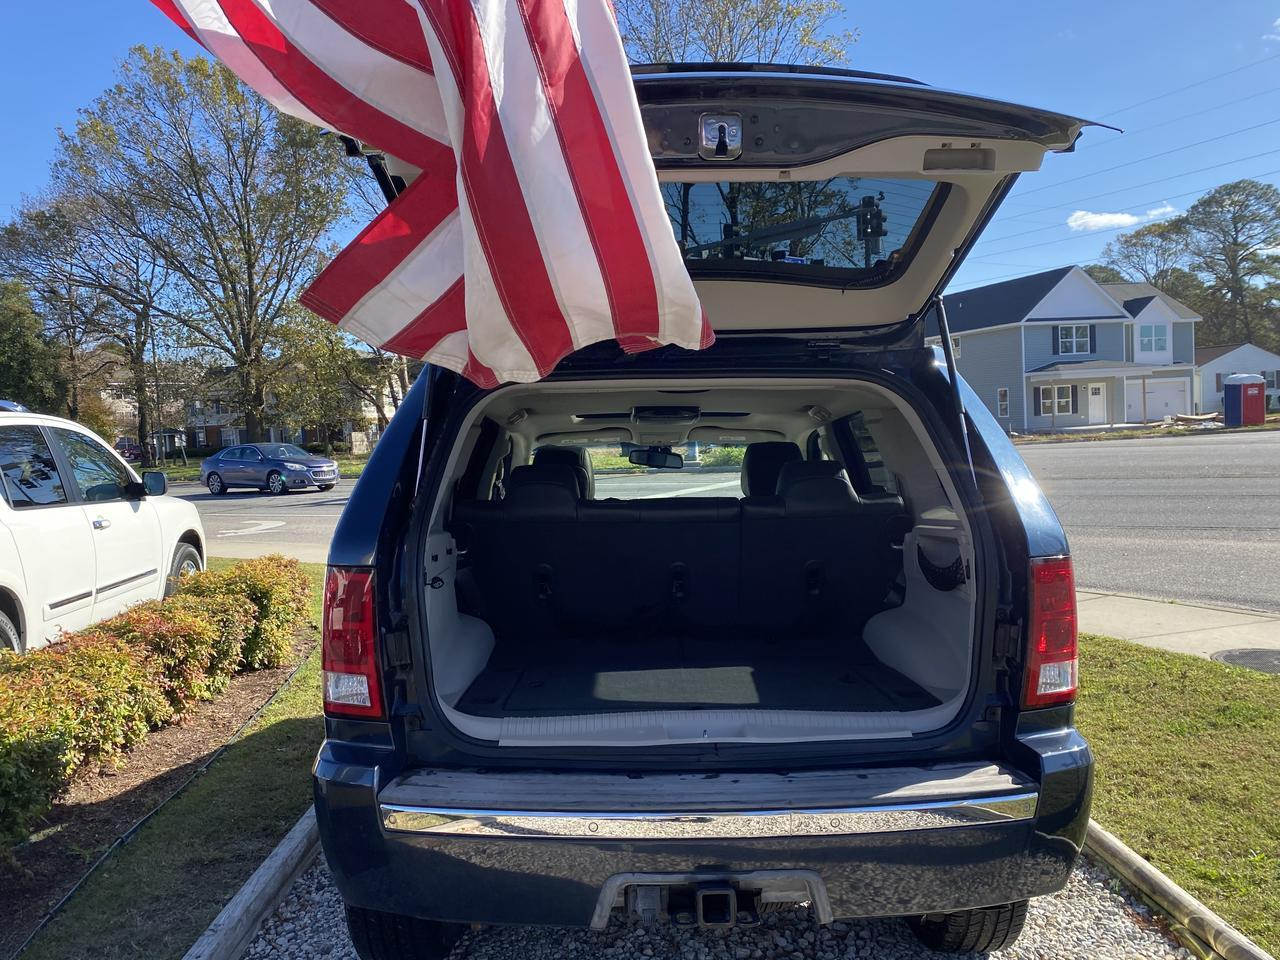 2008 JEEP GRAND CHEROKEE LIMITED 4X4, WARRANTY, LEATHER, NAV, HEATED SEATS, BLUETOOTH, BACKUP CAM, CLEAN CARFAX! Norfolk VA